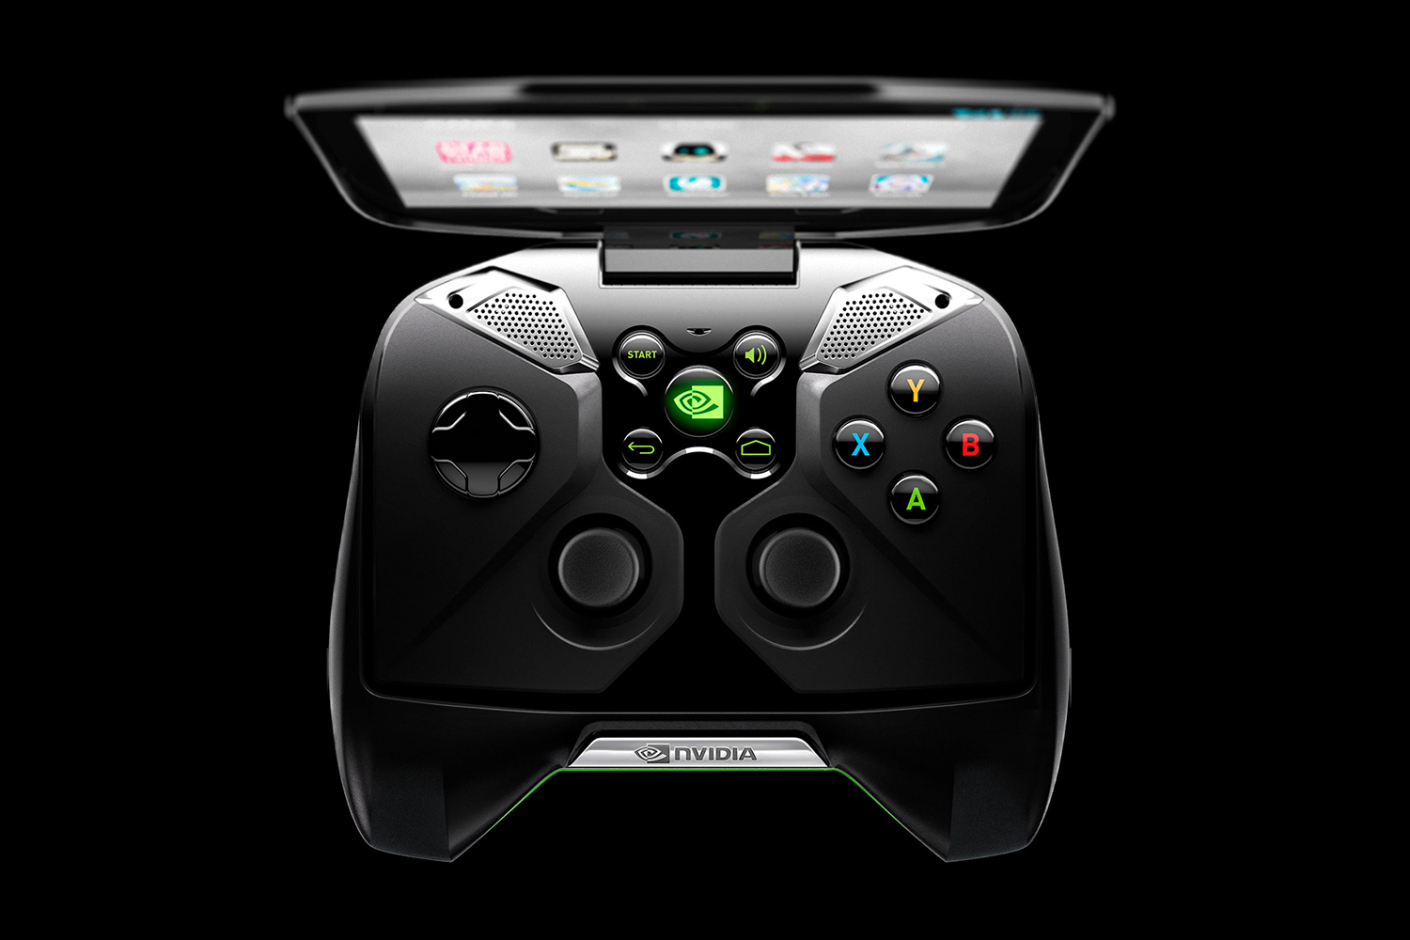 Nvidia Announces Project Shield, an Android-Powered Handheld Gaming Device With Big Ambitions